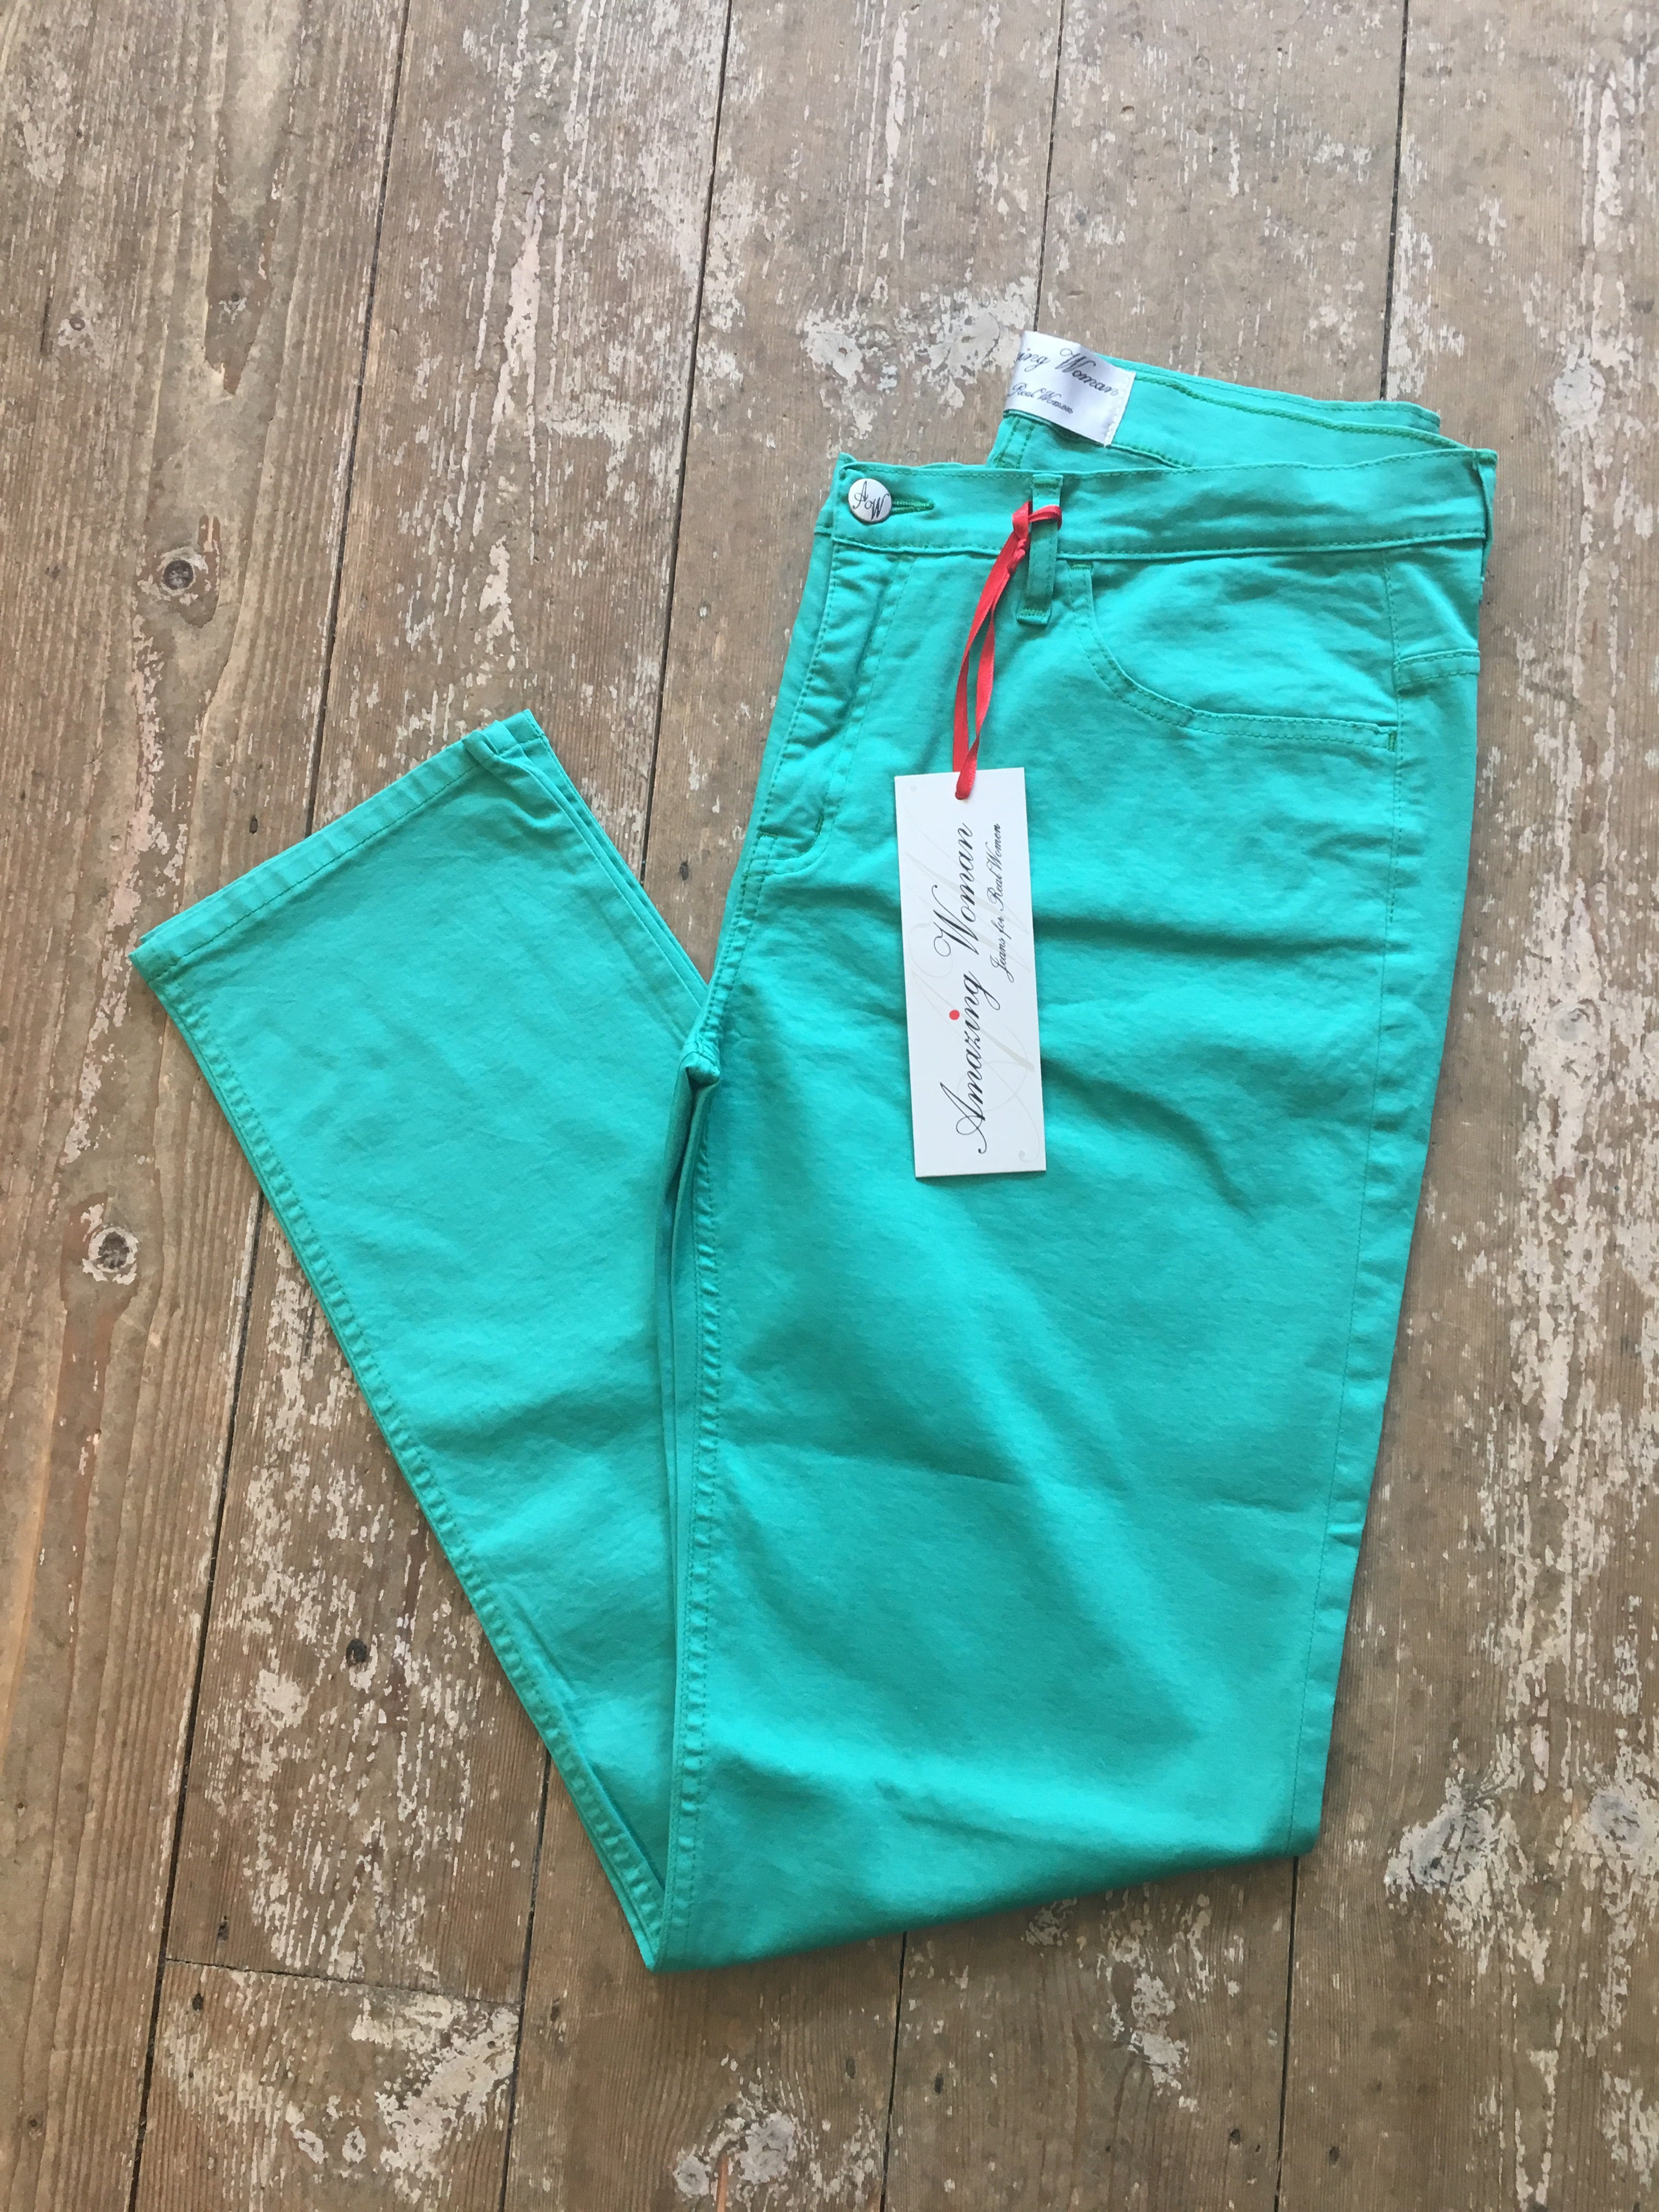 Amazing Woman Green 02Moonlt Jeans #amazingwomanjeans #amazingwomanmoonltjeans #amazingwomangreenjeans #amazingwomangreenmoonltjeans #jeansforcurves #jeansfortheover50s